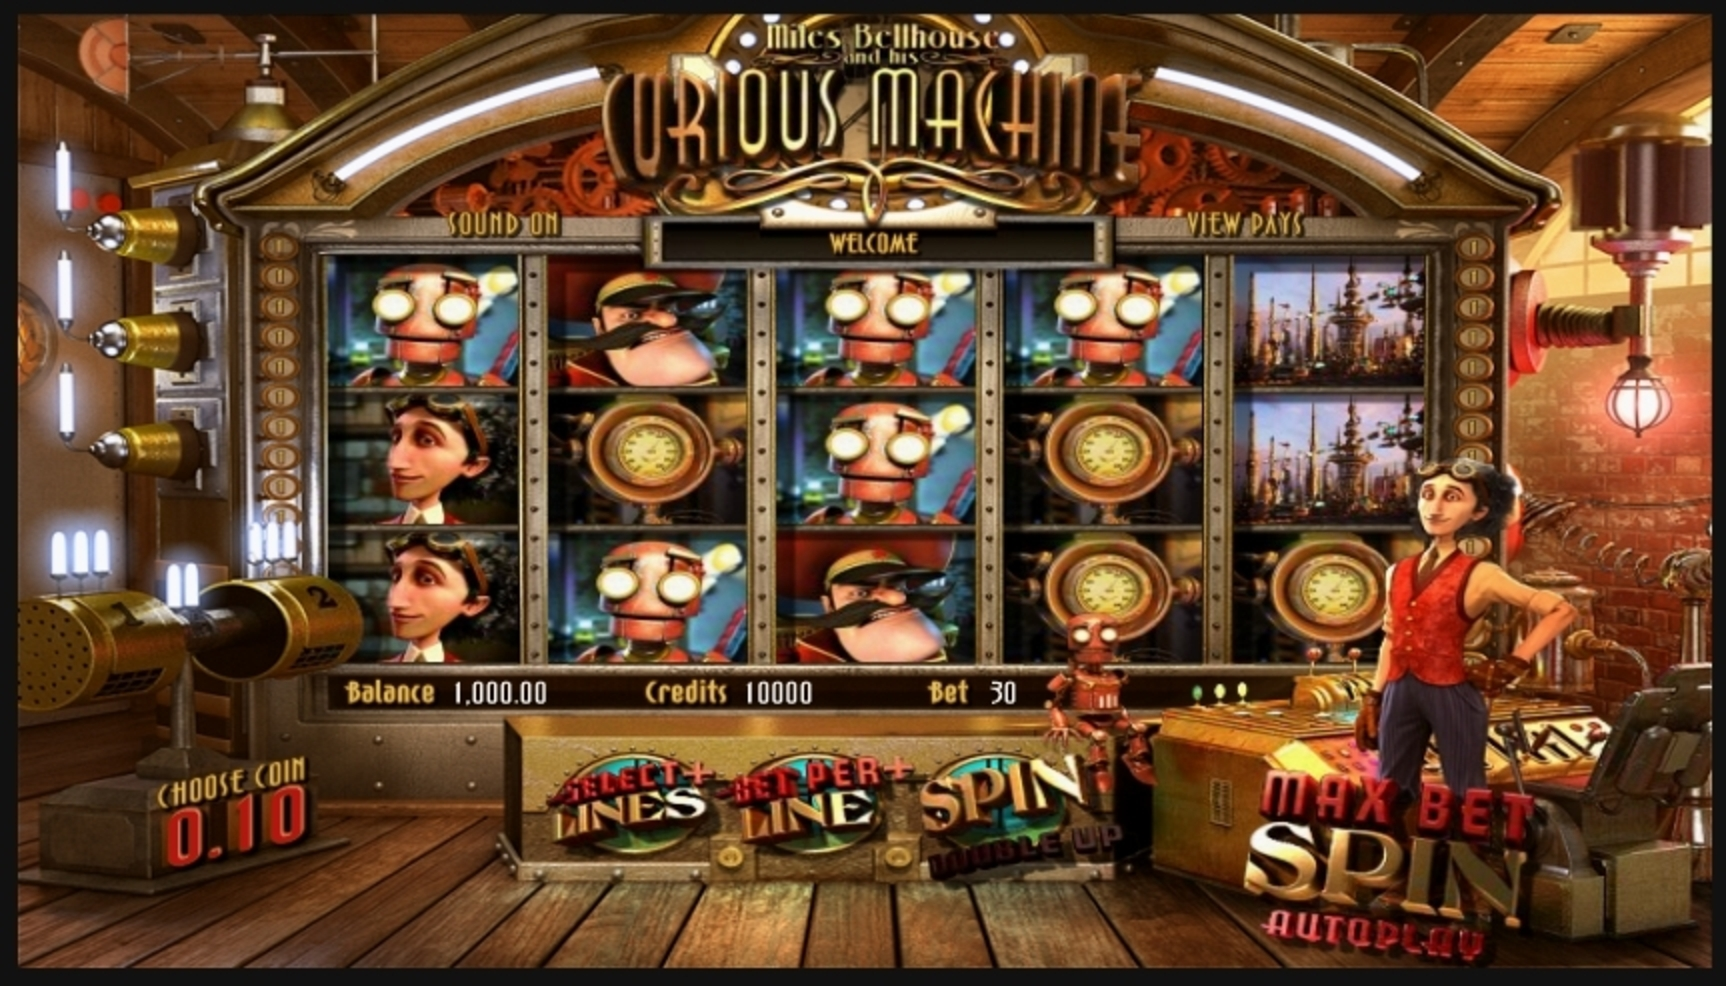 Reels in The Curious Machine Slot Game by Betsoft